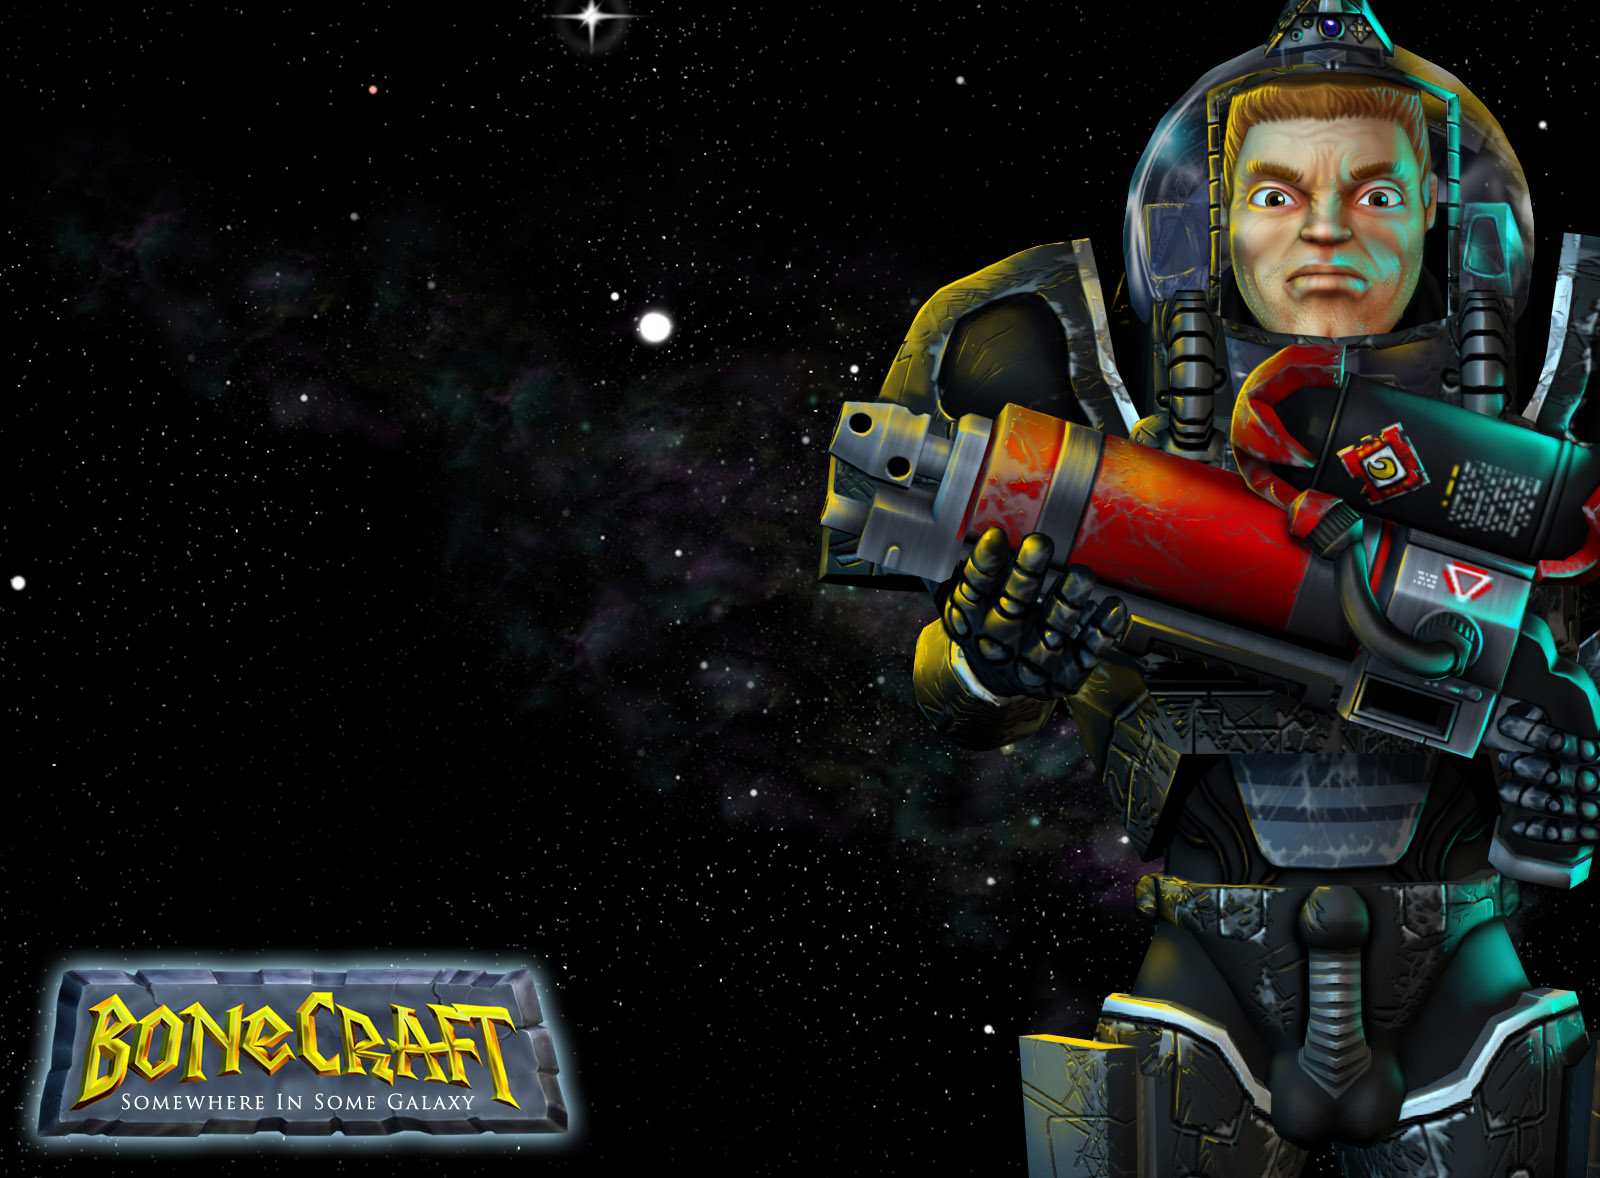 BoneCraft Space Wrangler Wallpaper 2